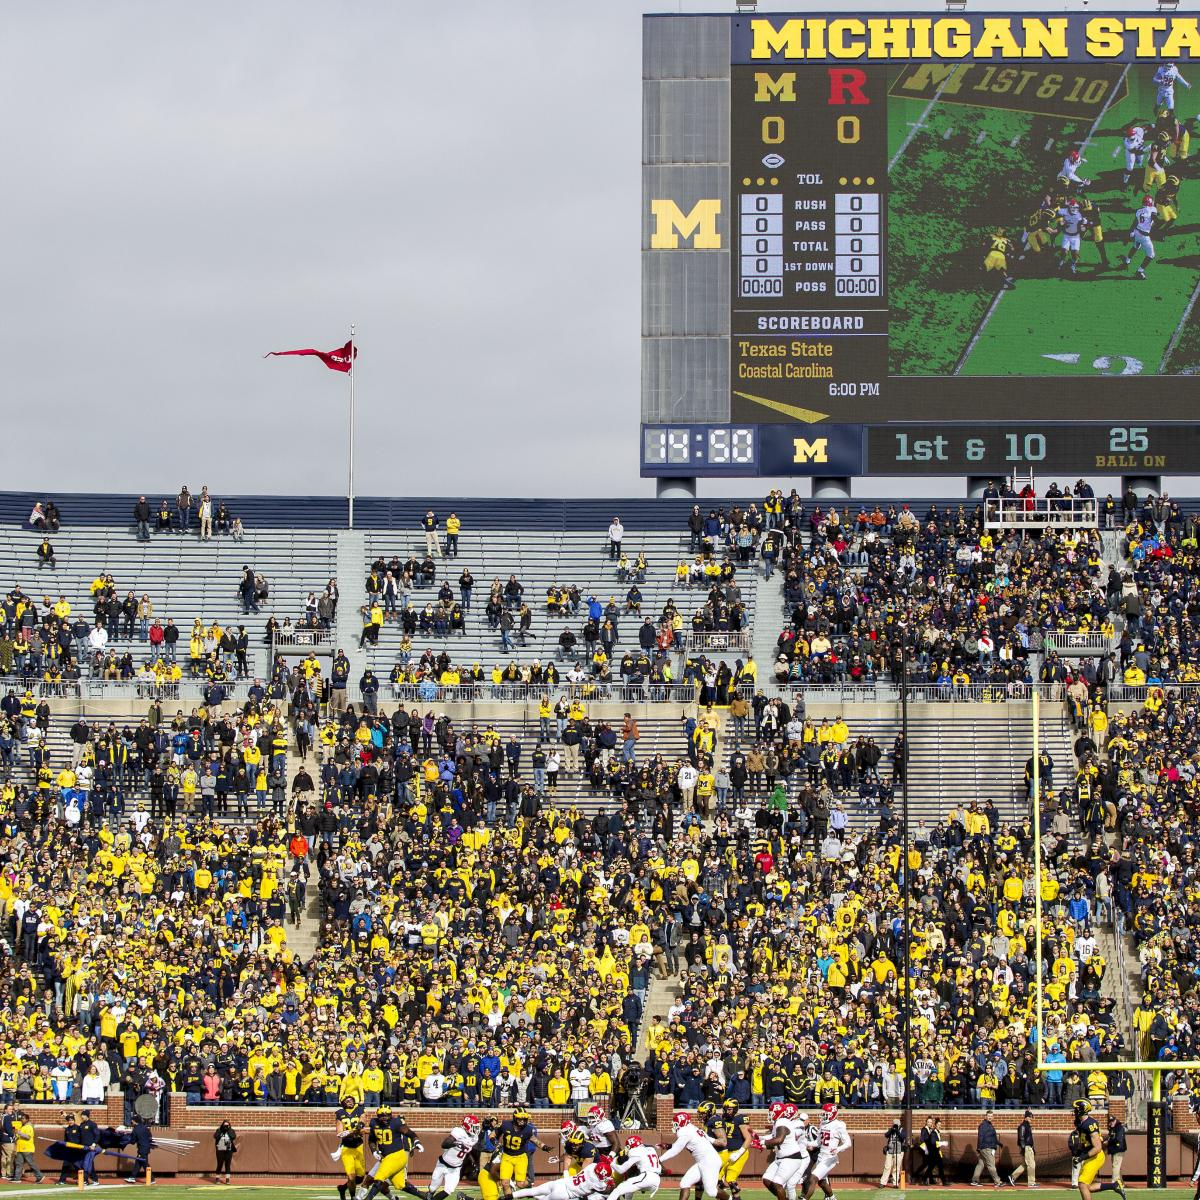 The 10 Largest College Football Stadiums In The Country